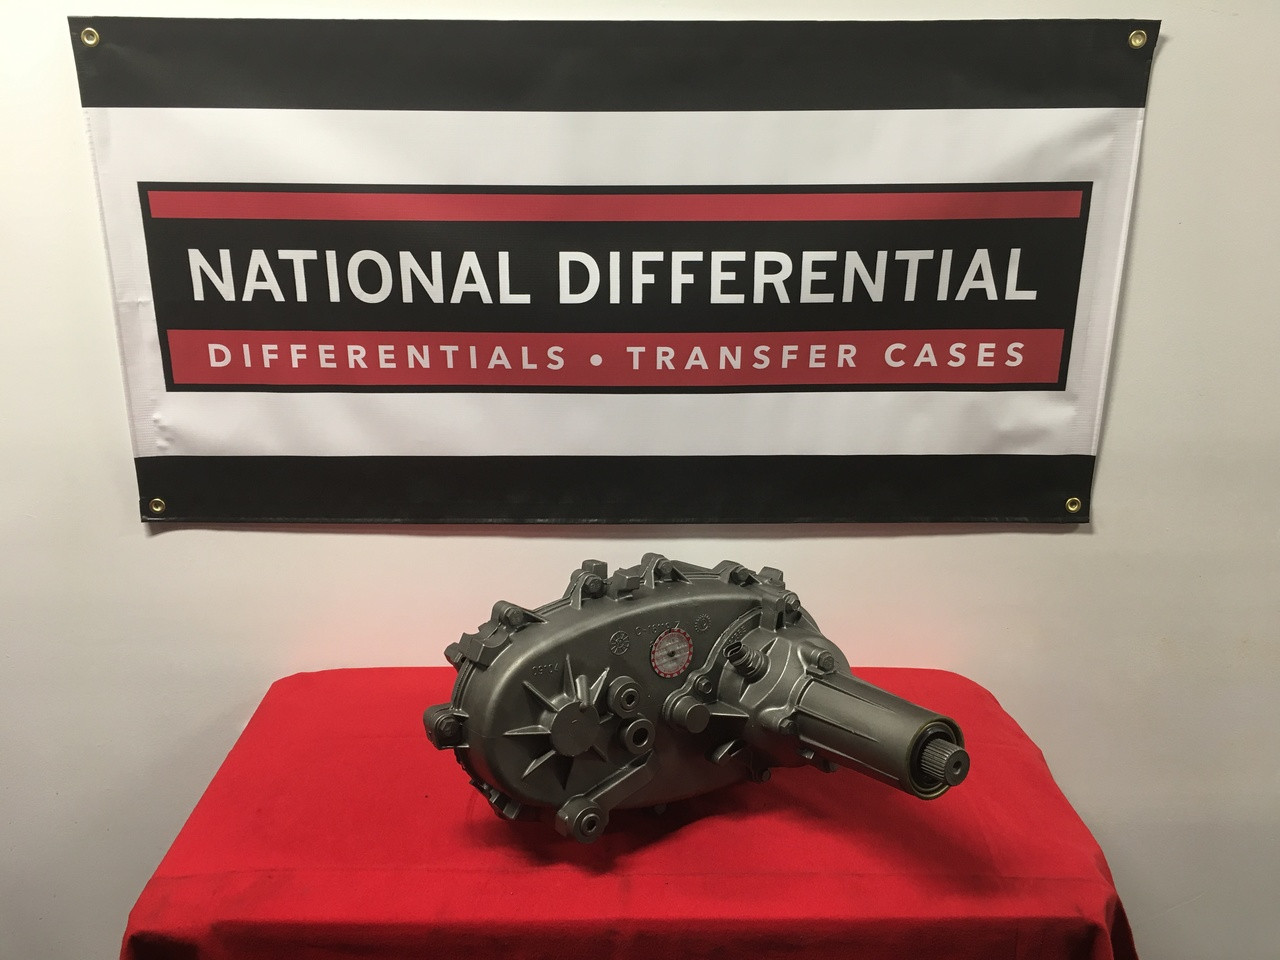 New Process NP 241C Transfer Case for 1995, 1996, 1997, 1998, and 1999 Chevrolet 1500 Trucks with a three wire harness.